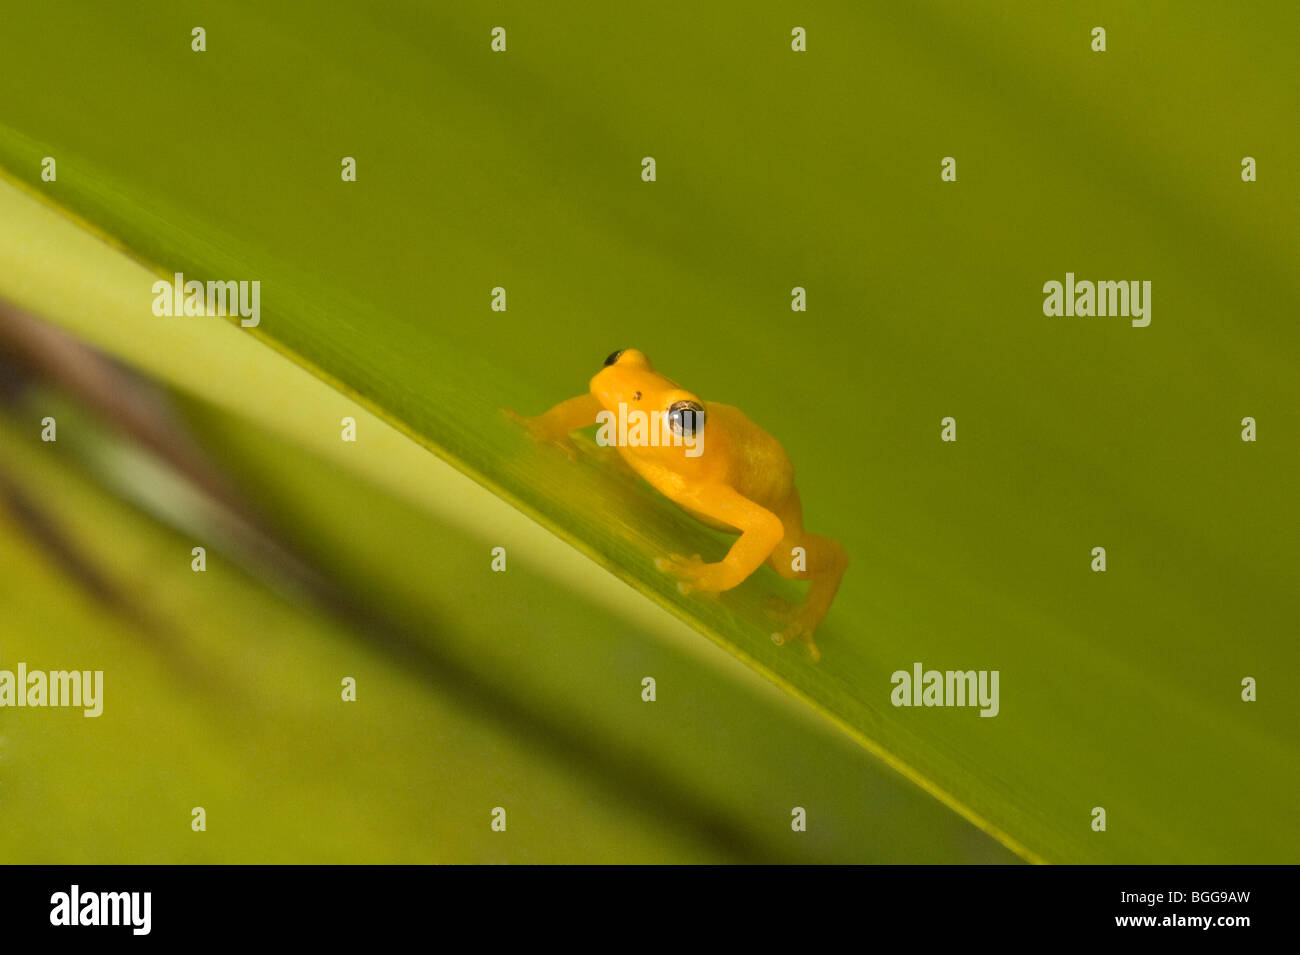 Golden Poison-Dart Frog (Colostethus beebei) poised on Giant Tank Bromeliad (Brocchinia micrantha) leaf Kaieteur - Stock Image